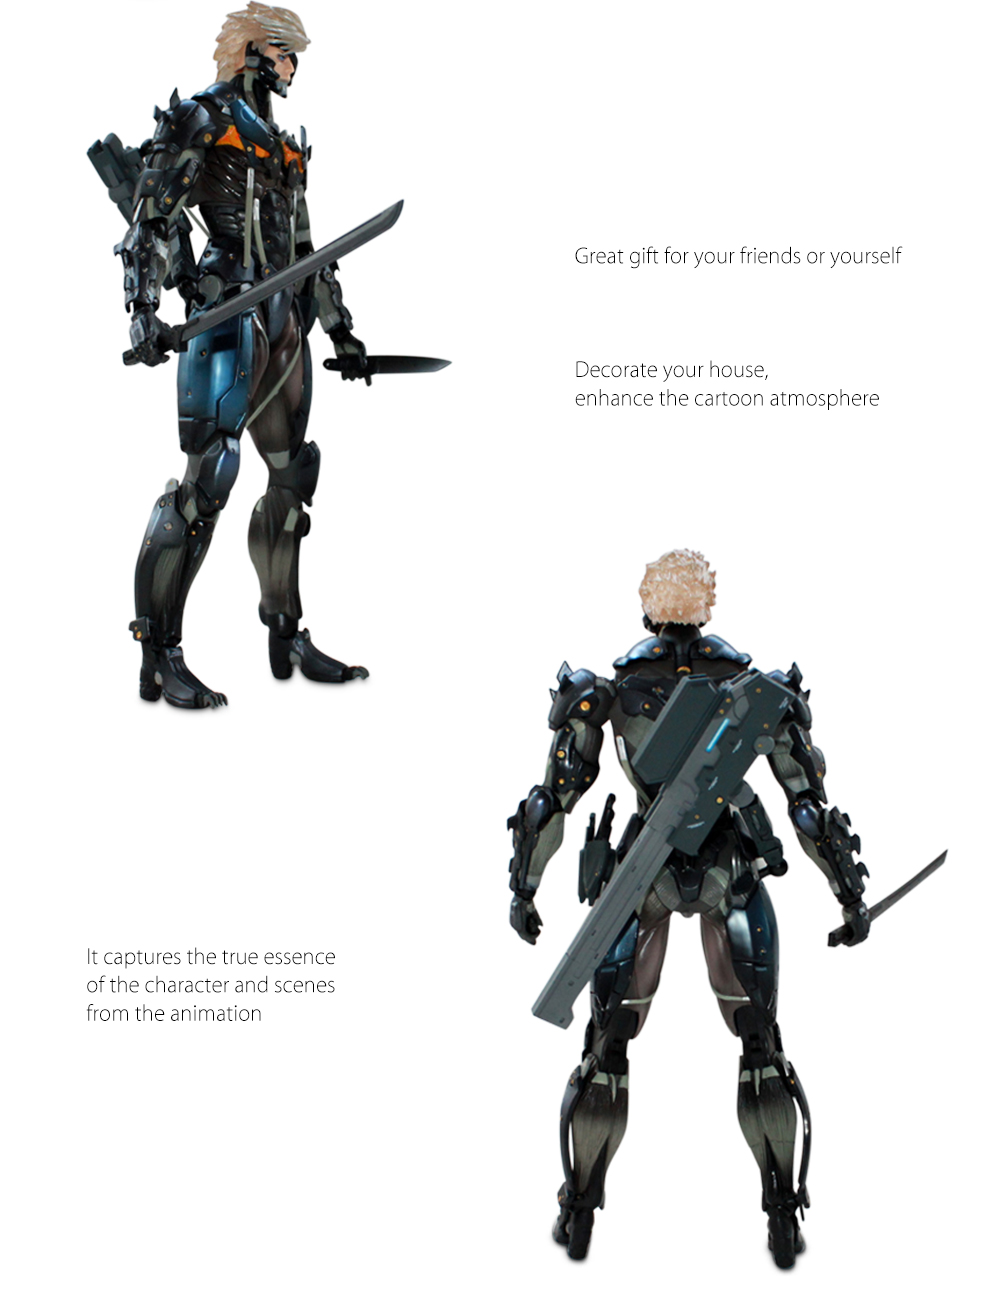 BEILEXING PVC Figure Model Action Game Collectible Figurine Toy - 9.84 inch